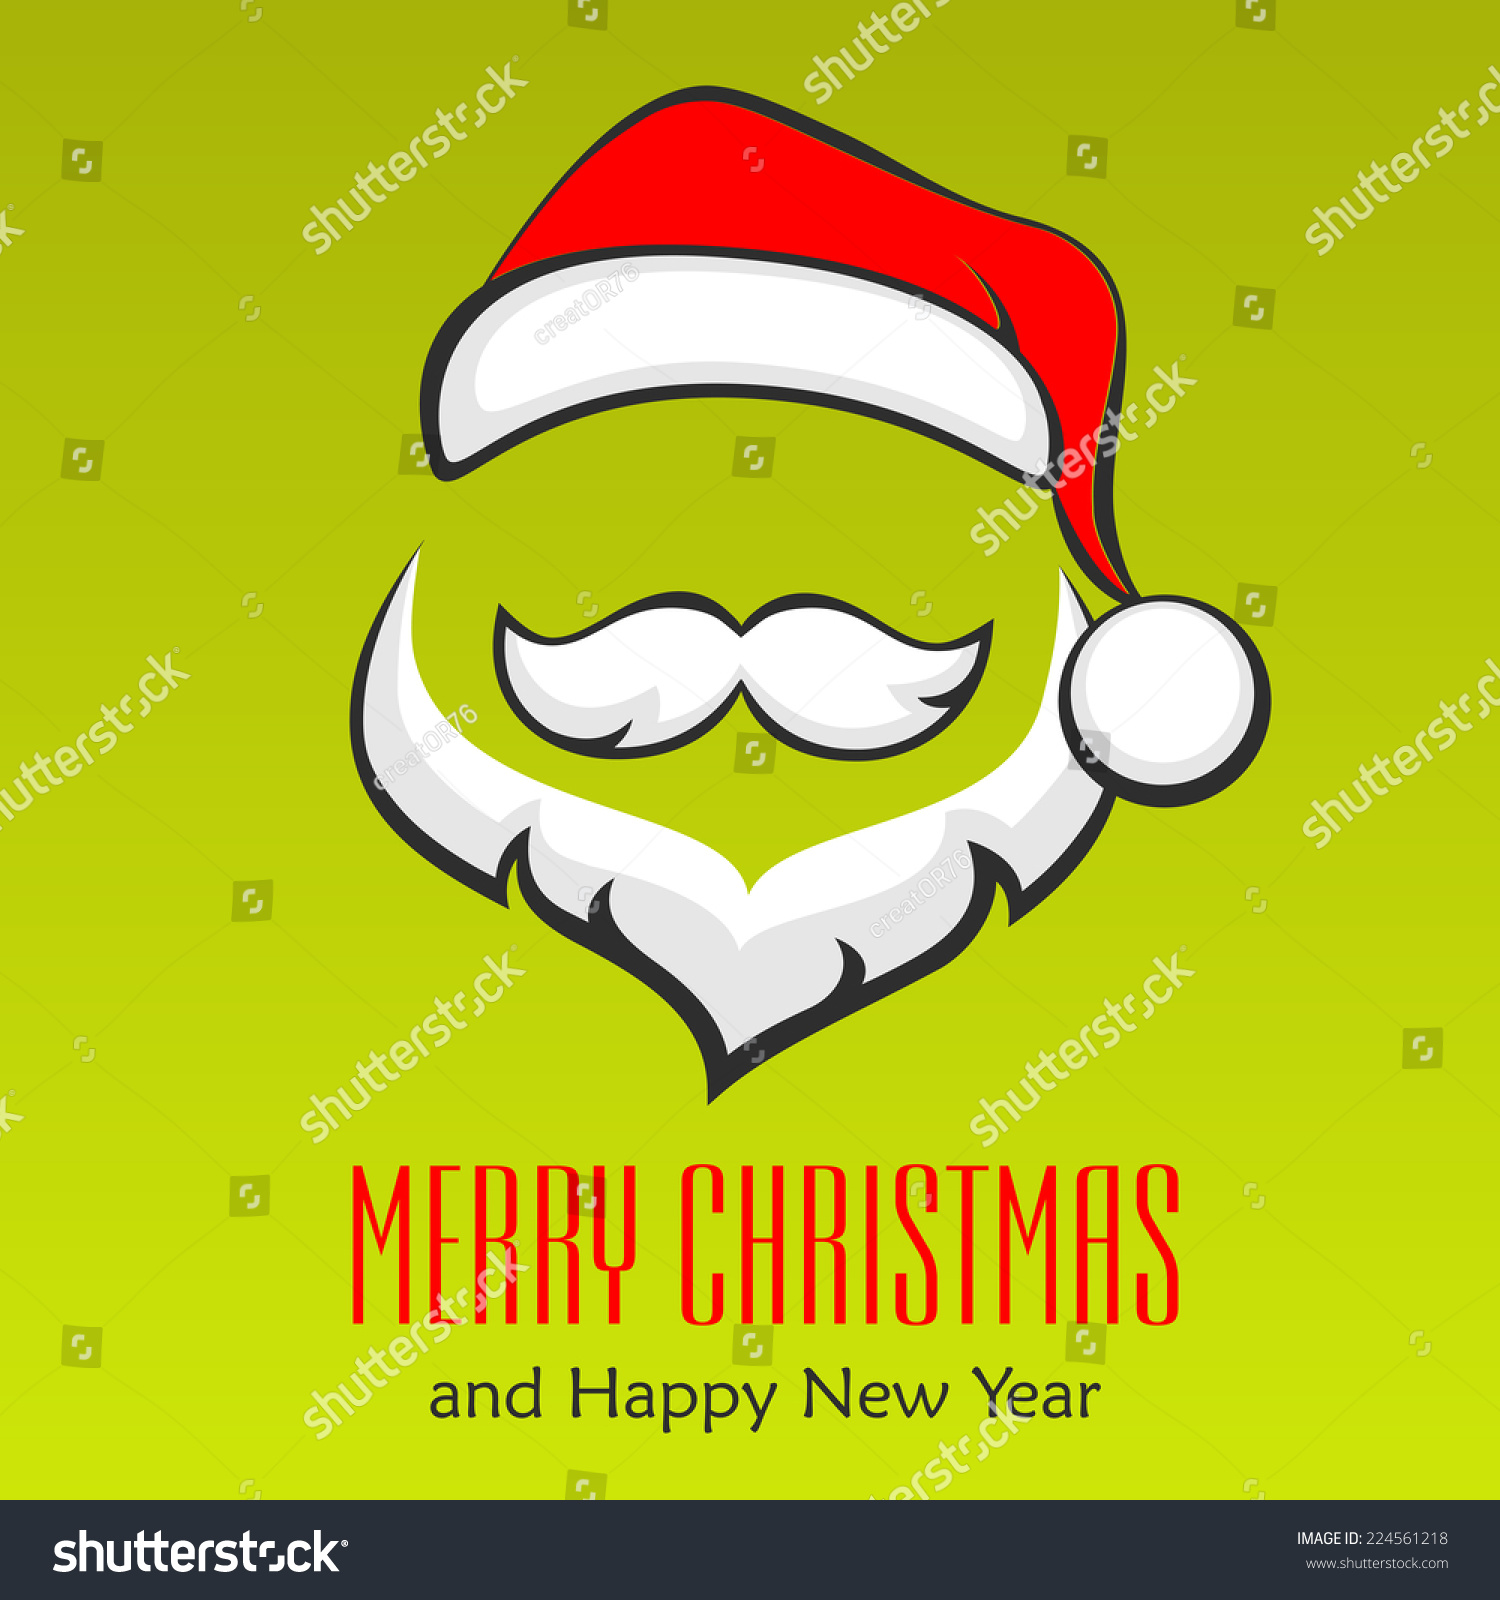 Santa Claus Hipster Style Face On Stock Vector 224561218 - Shutterstock